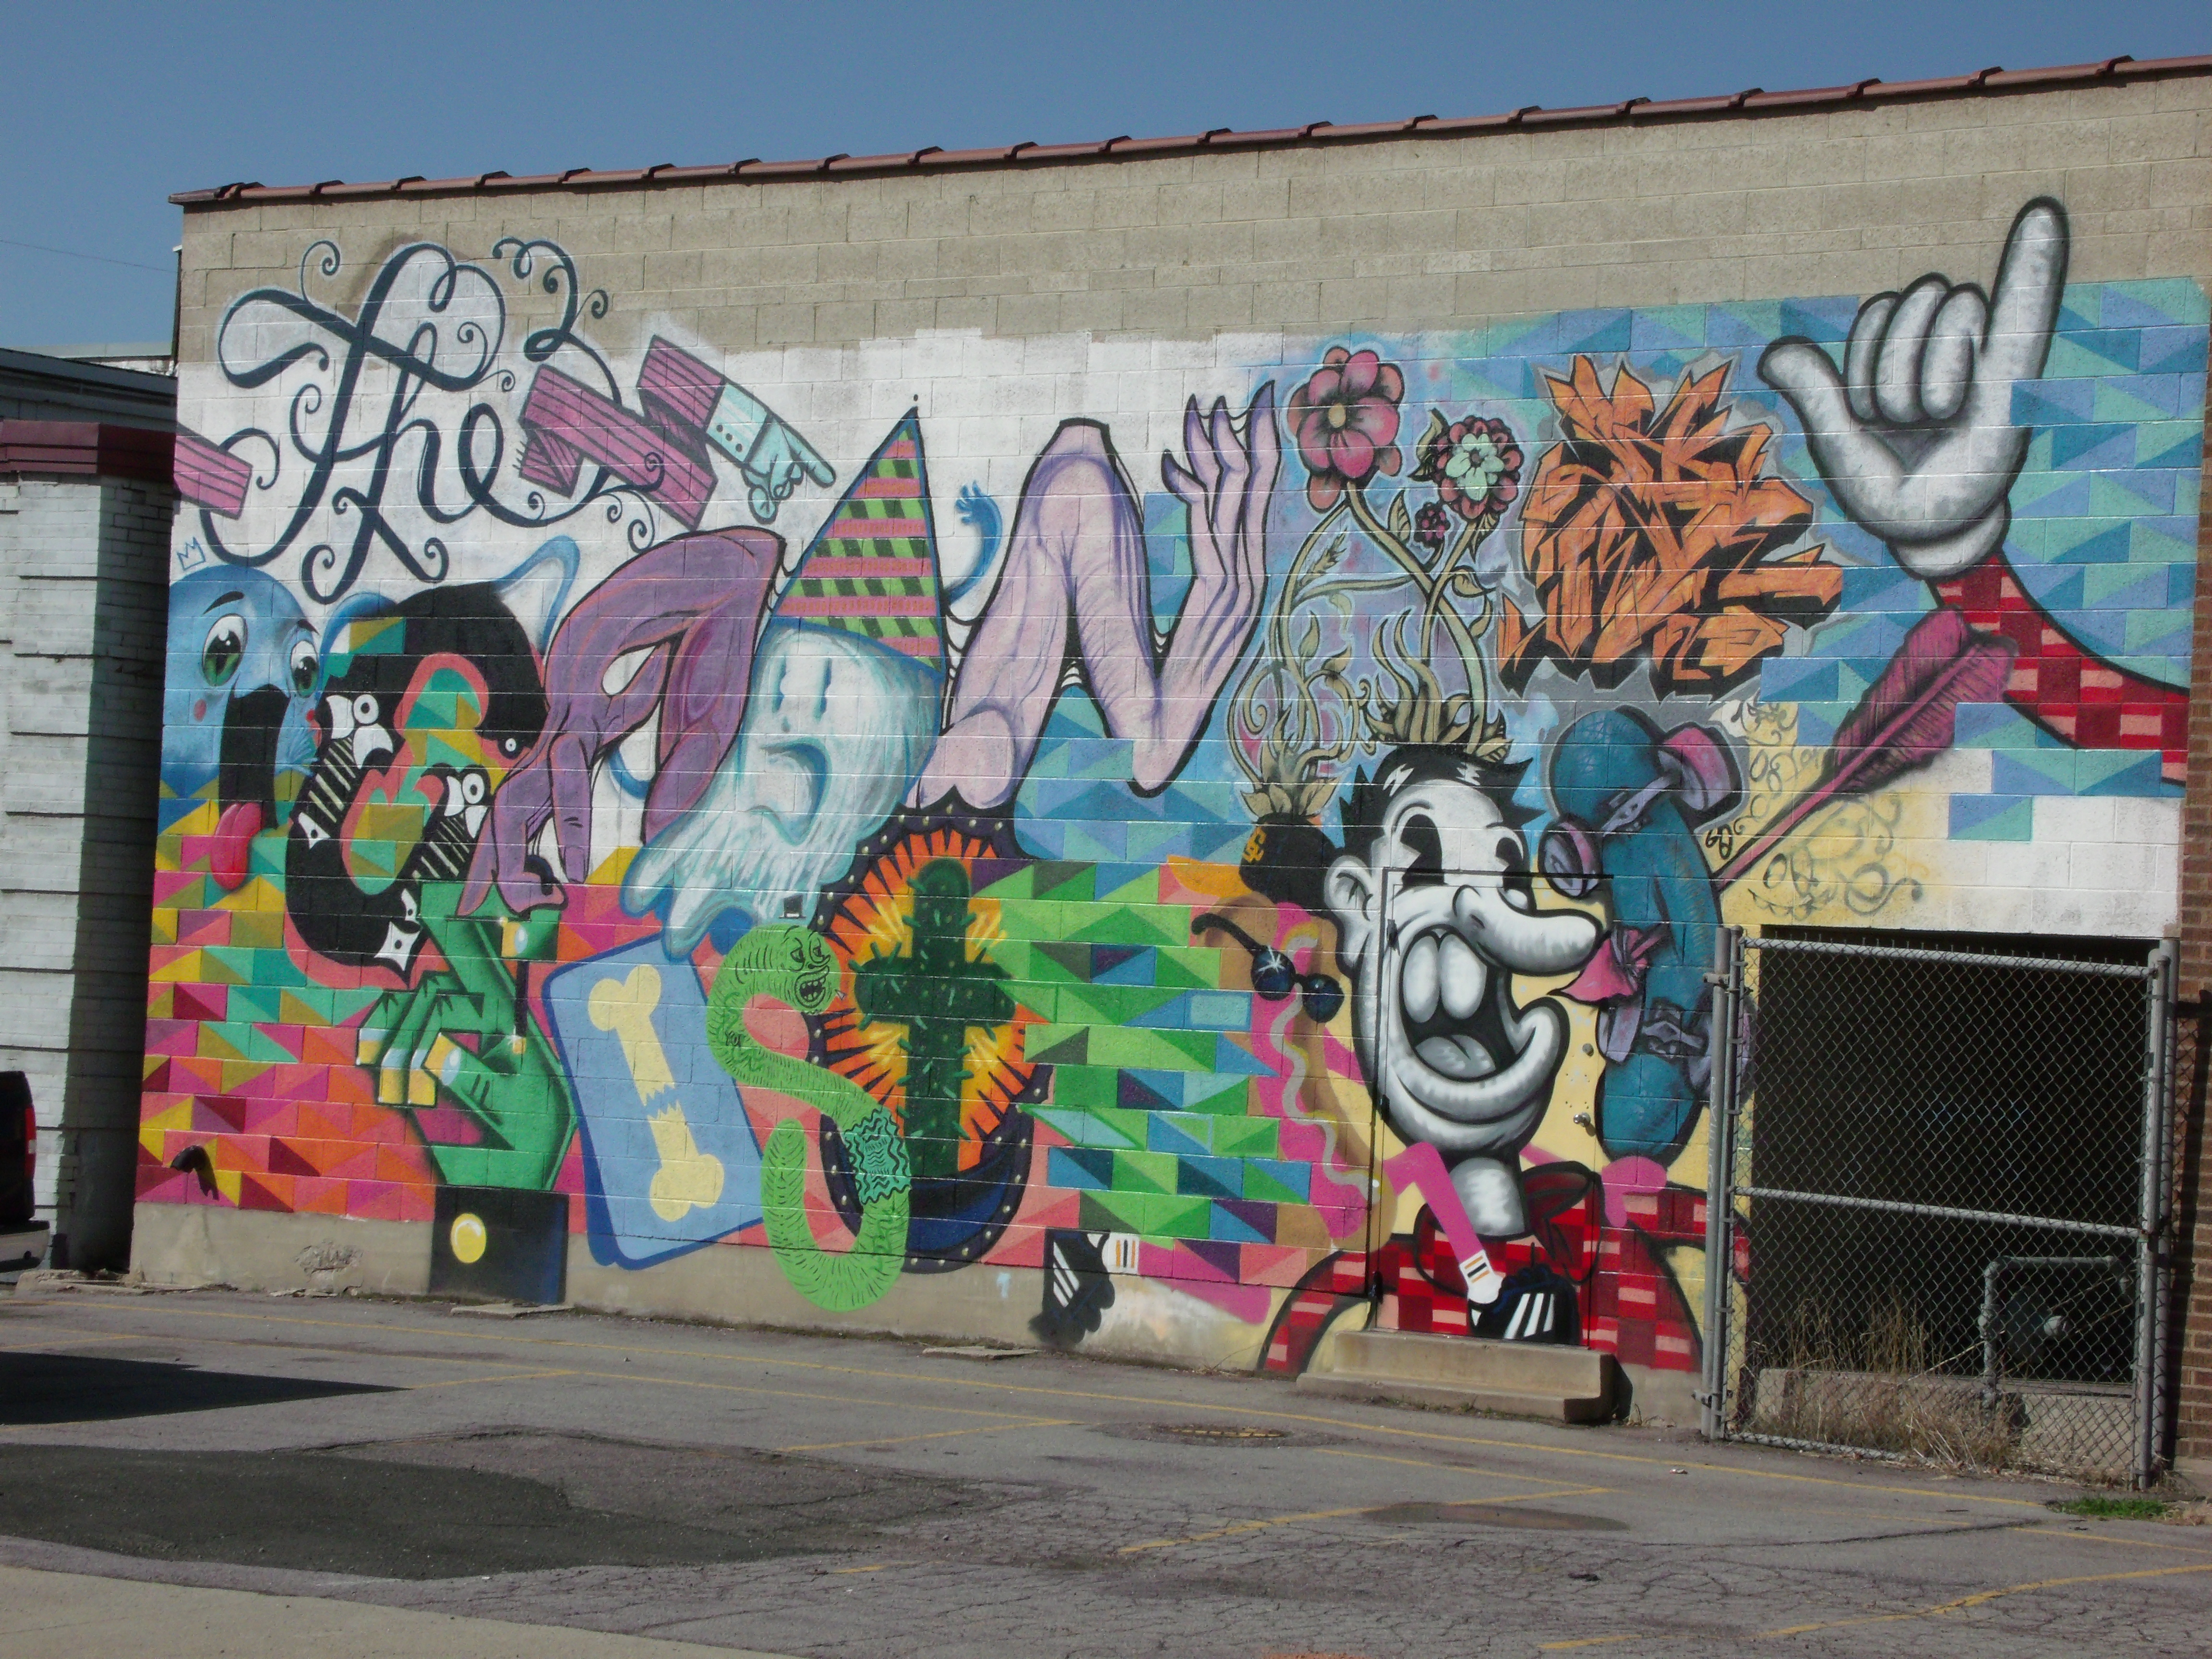 The World's newest photos of graffiti and pyramidwall - Flickr ...